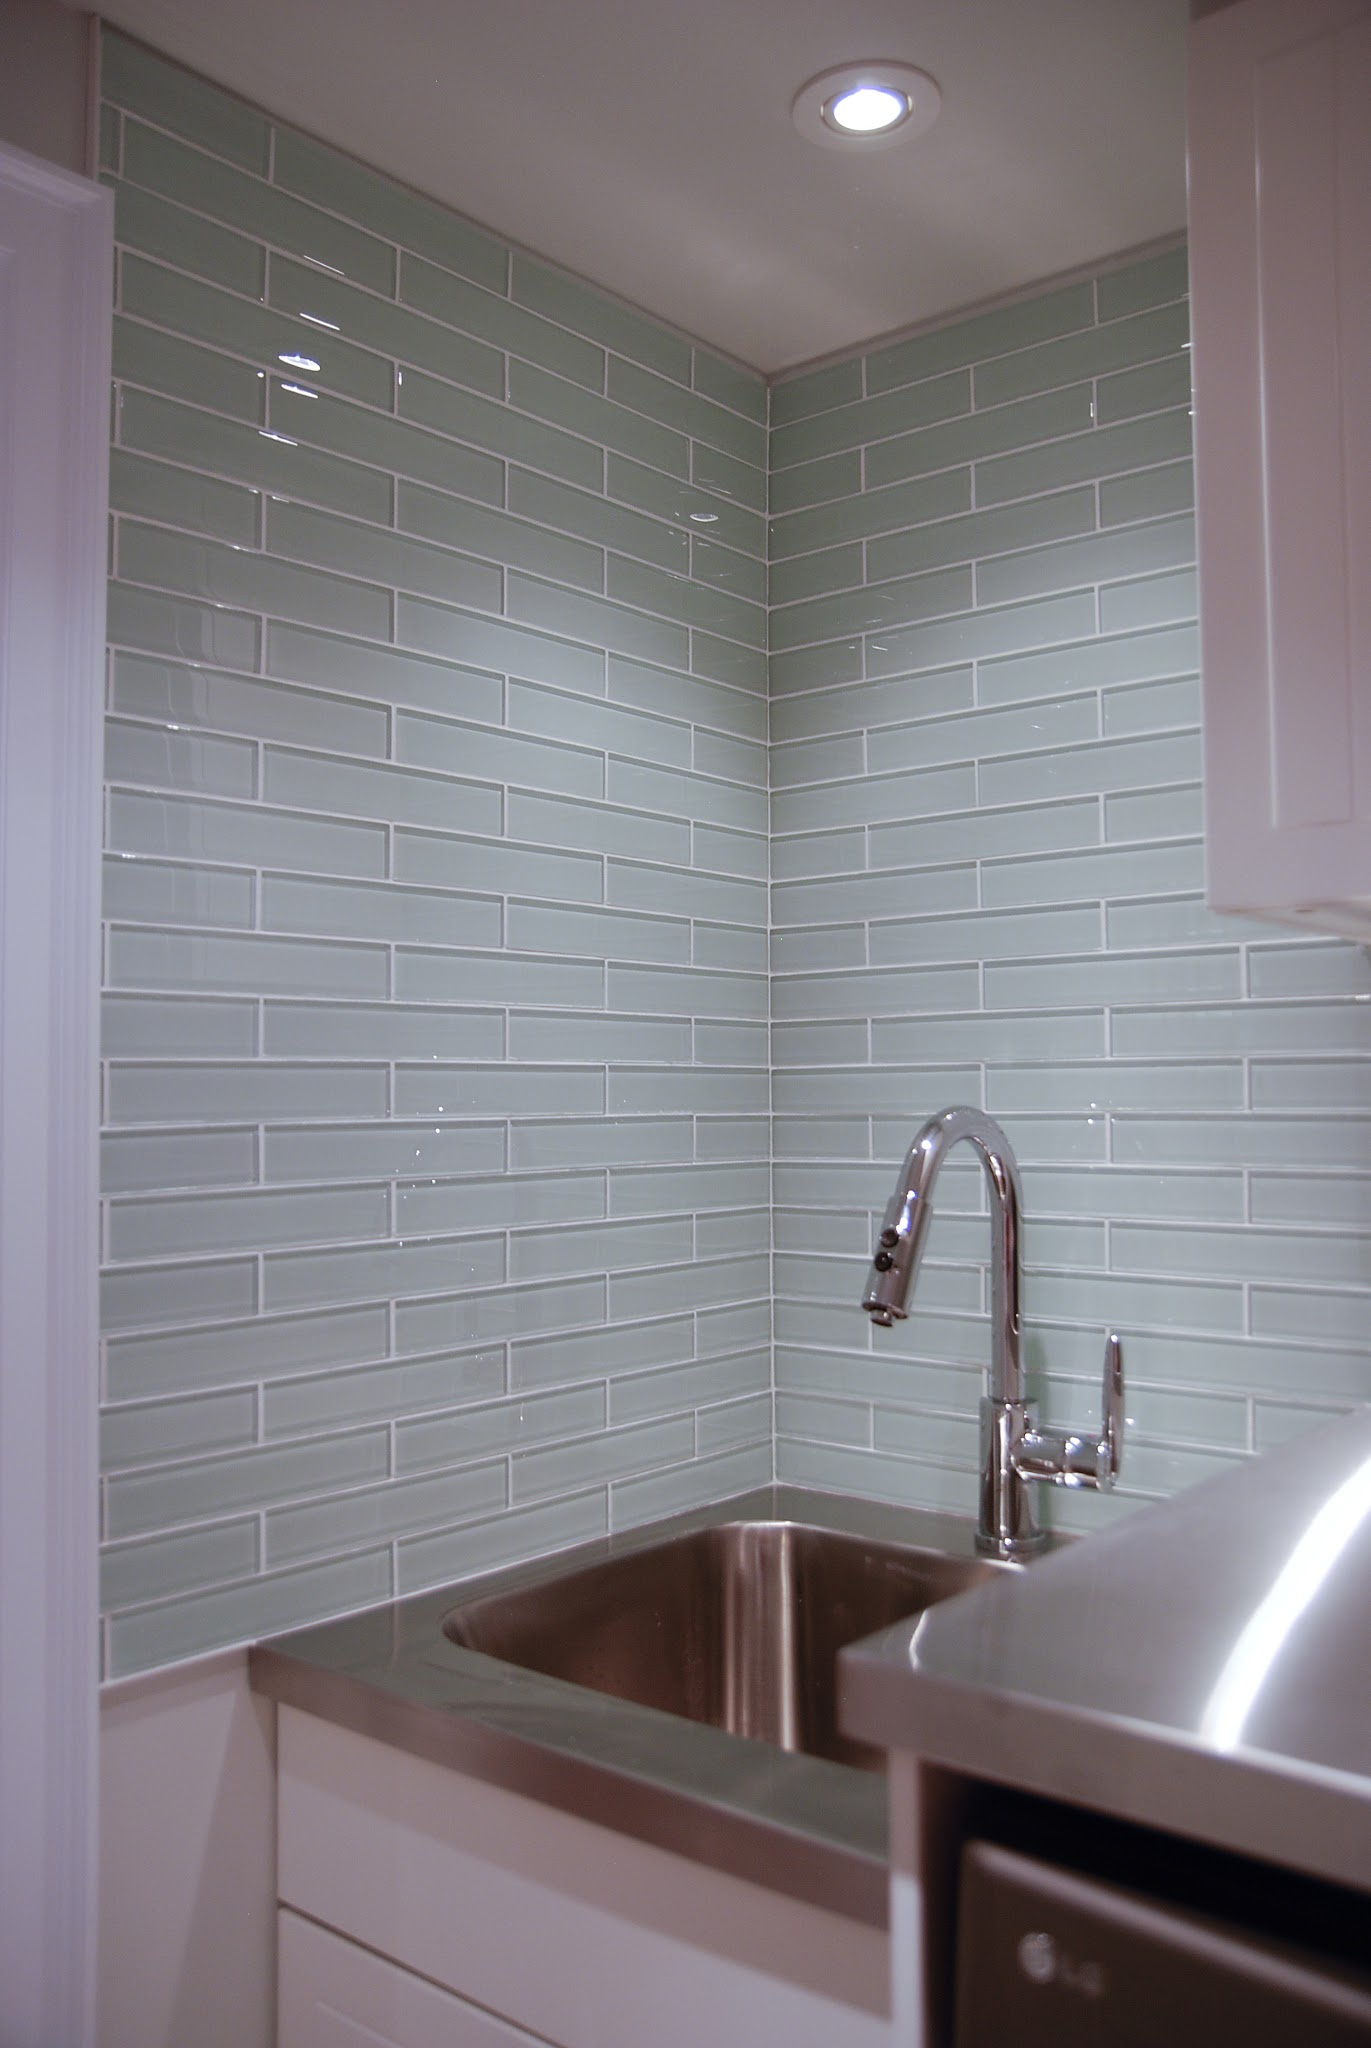 glass tile backsplash, glass tile in laundry room, laundry room backsplash, glass tile installation